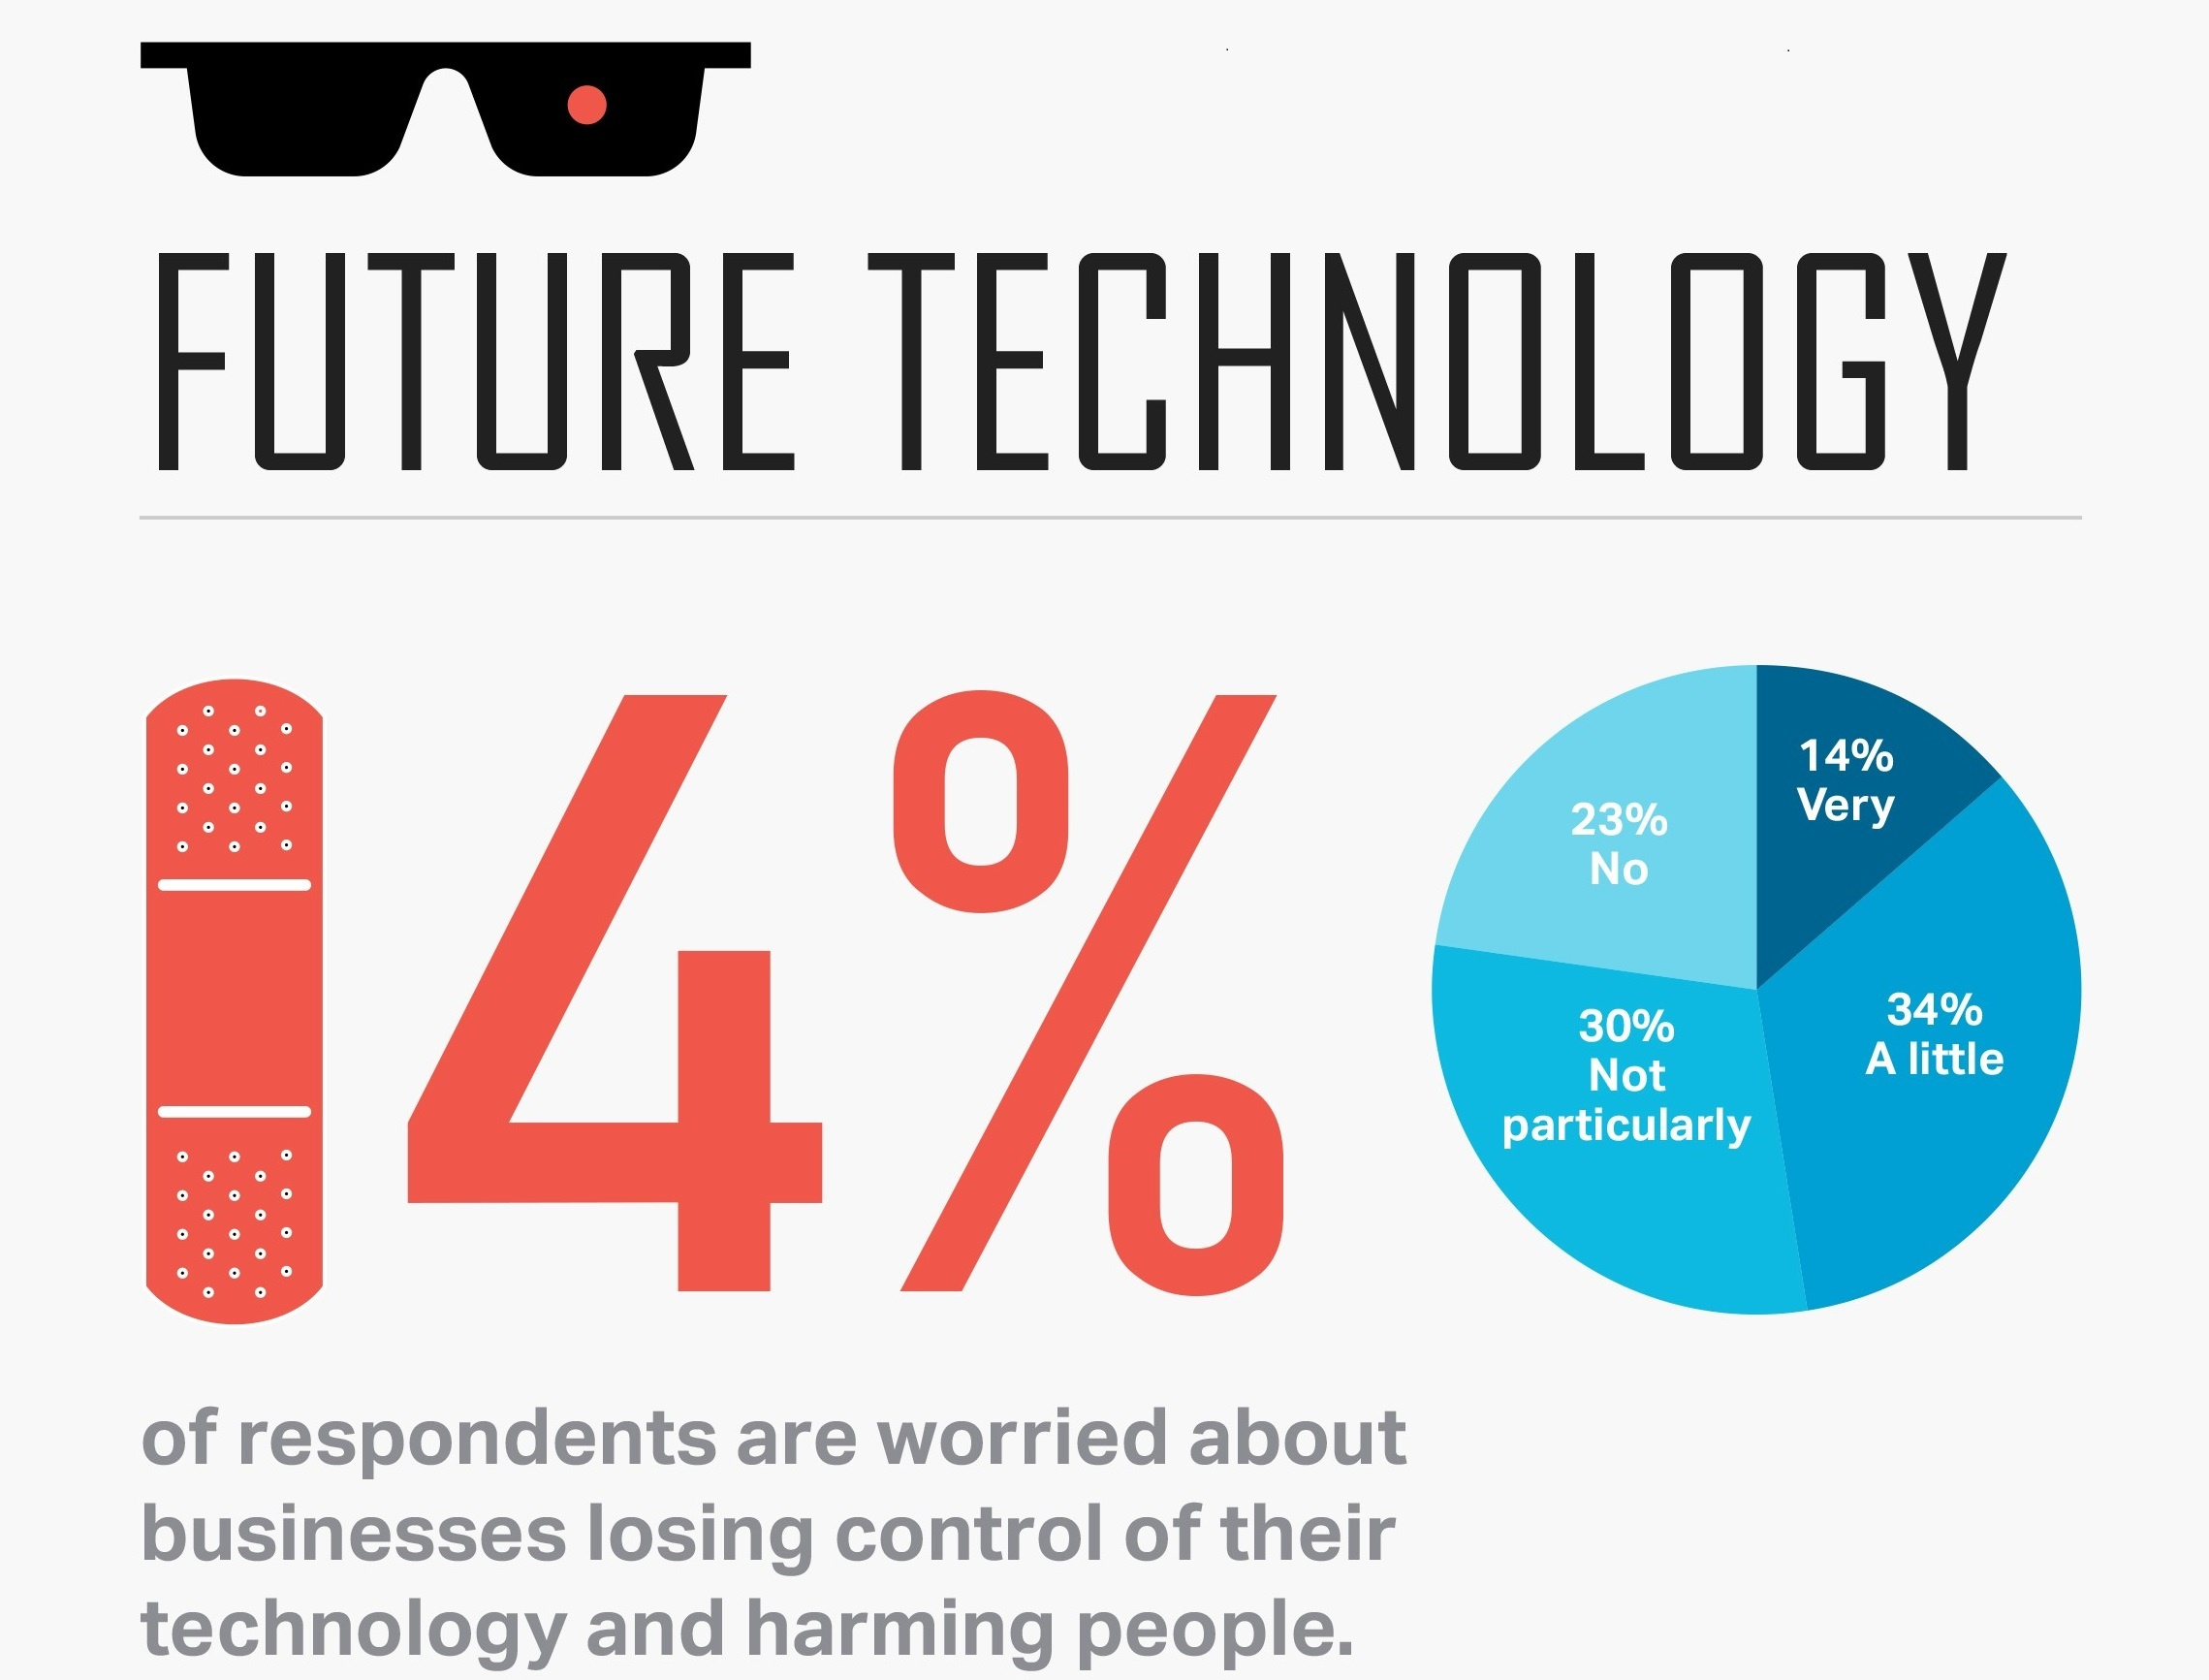 future of technology what are smbs worried about